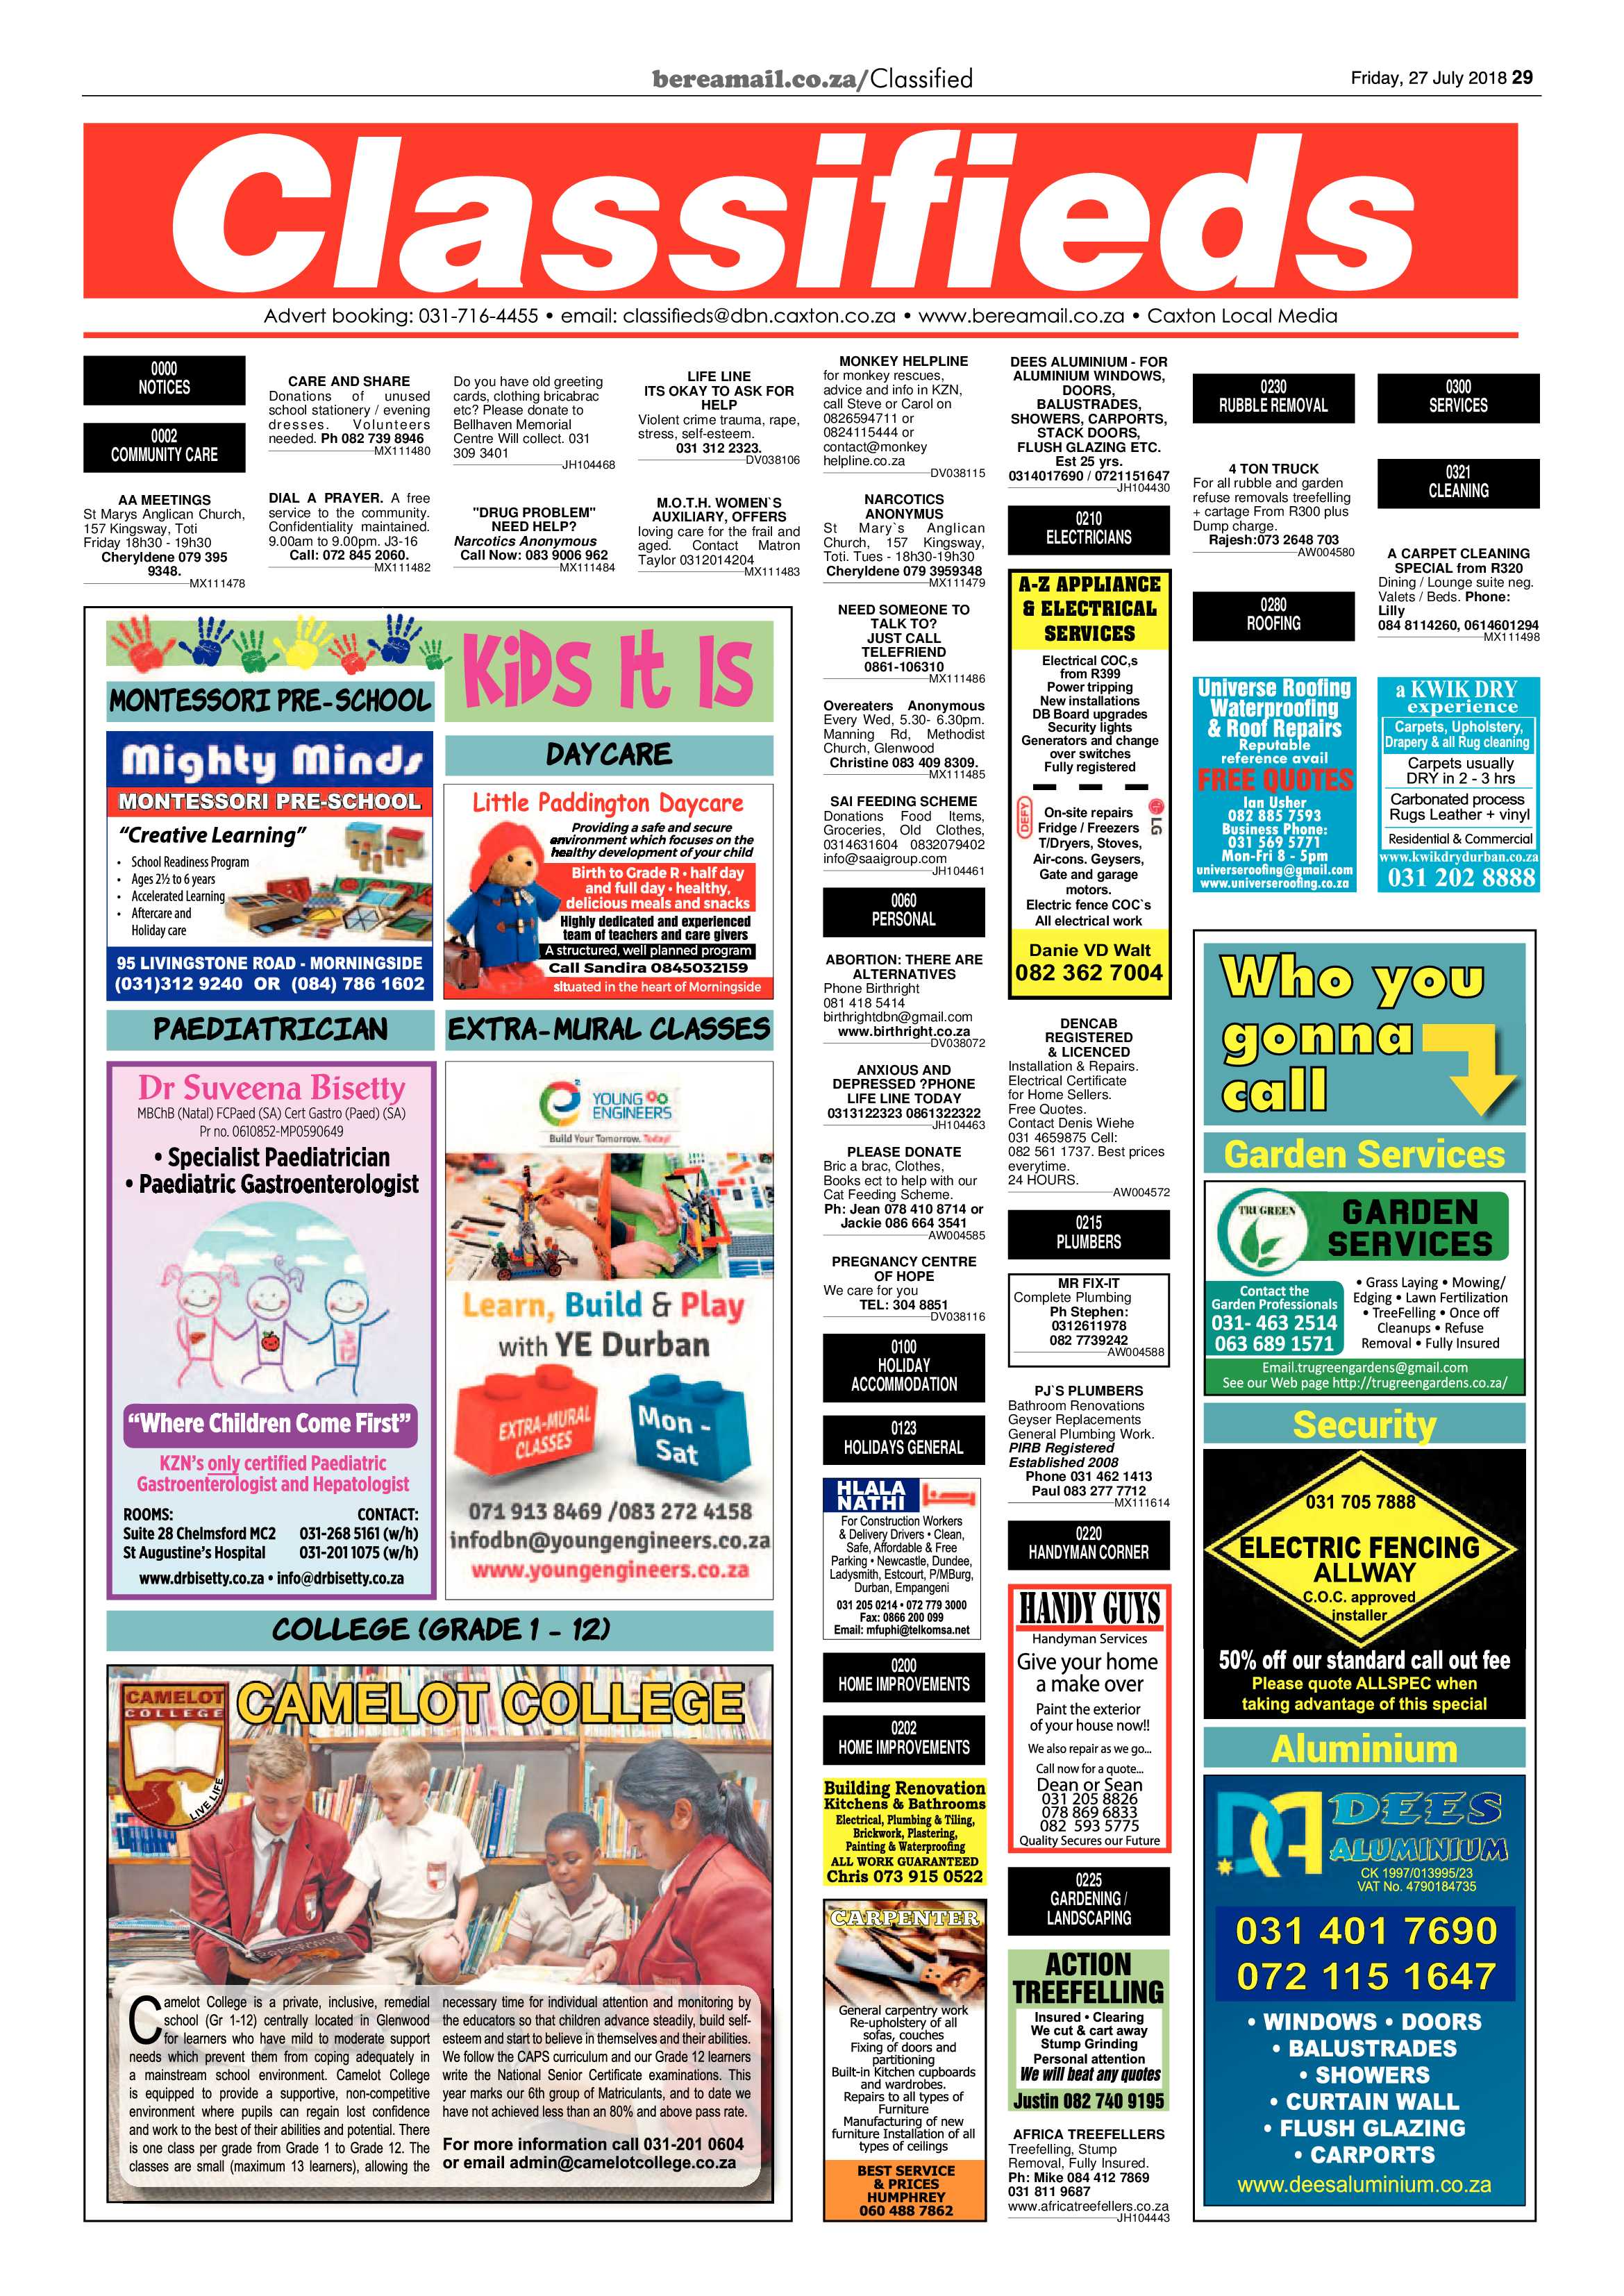 berea-mail-27-july-2018-epapers-page-29